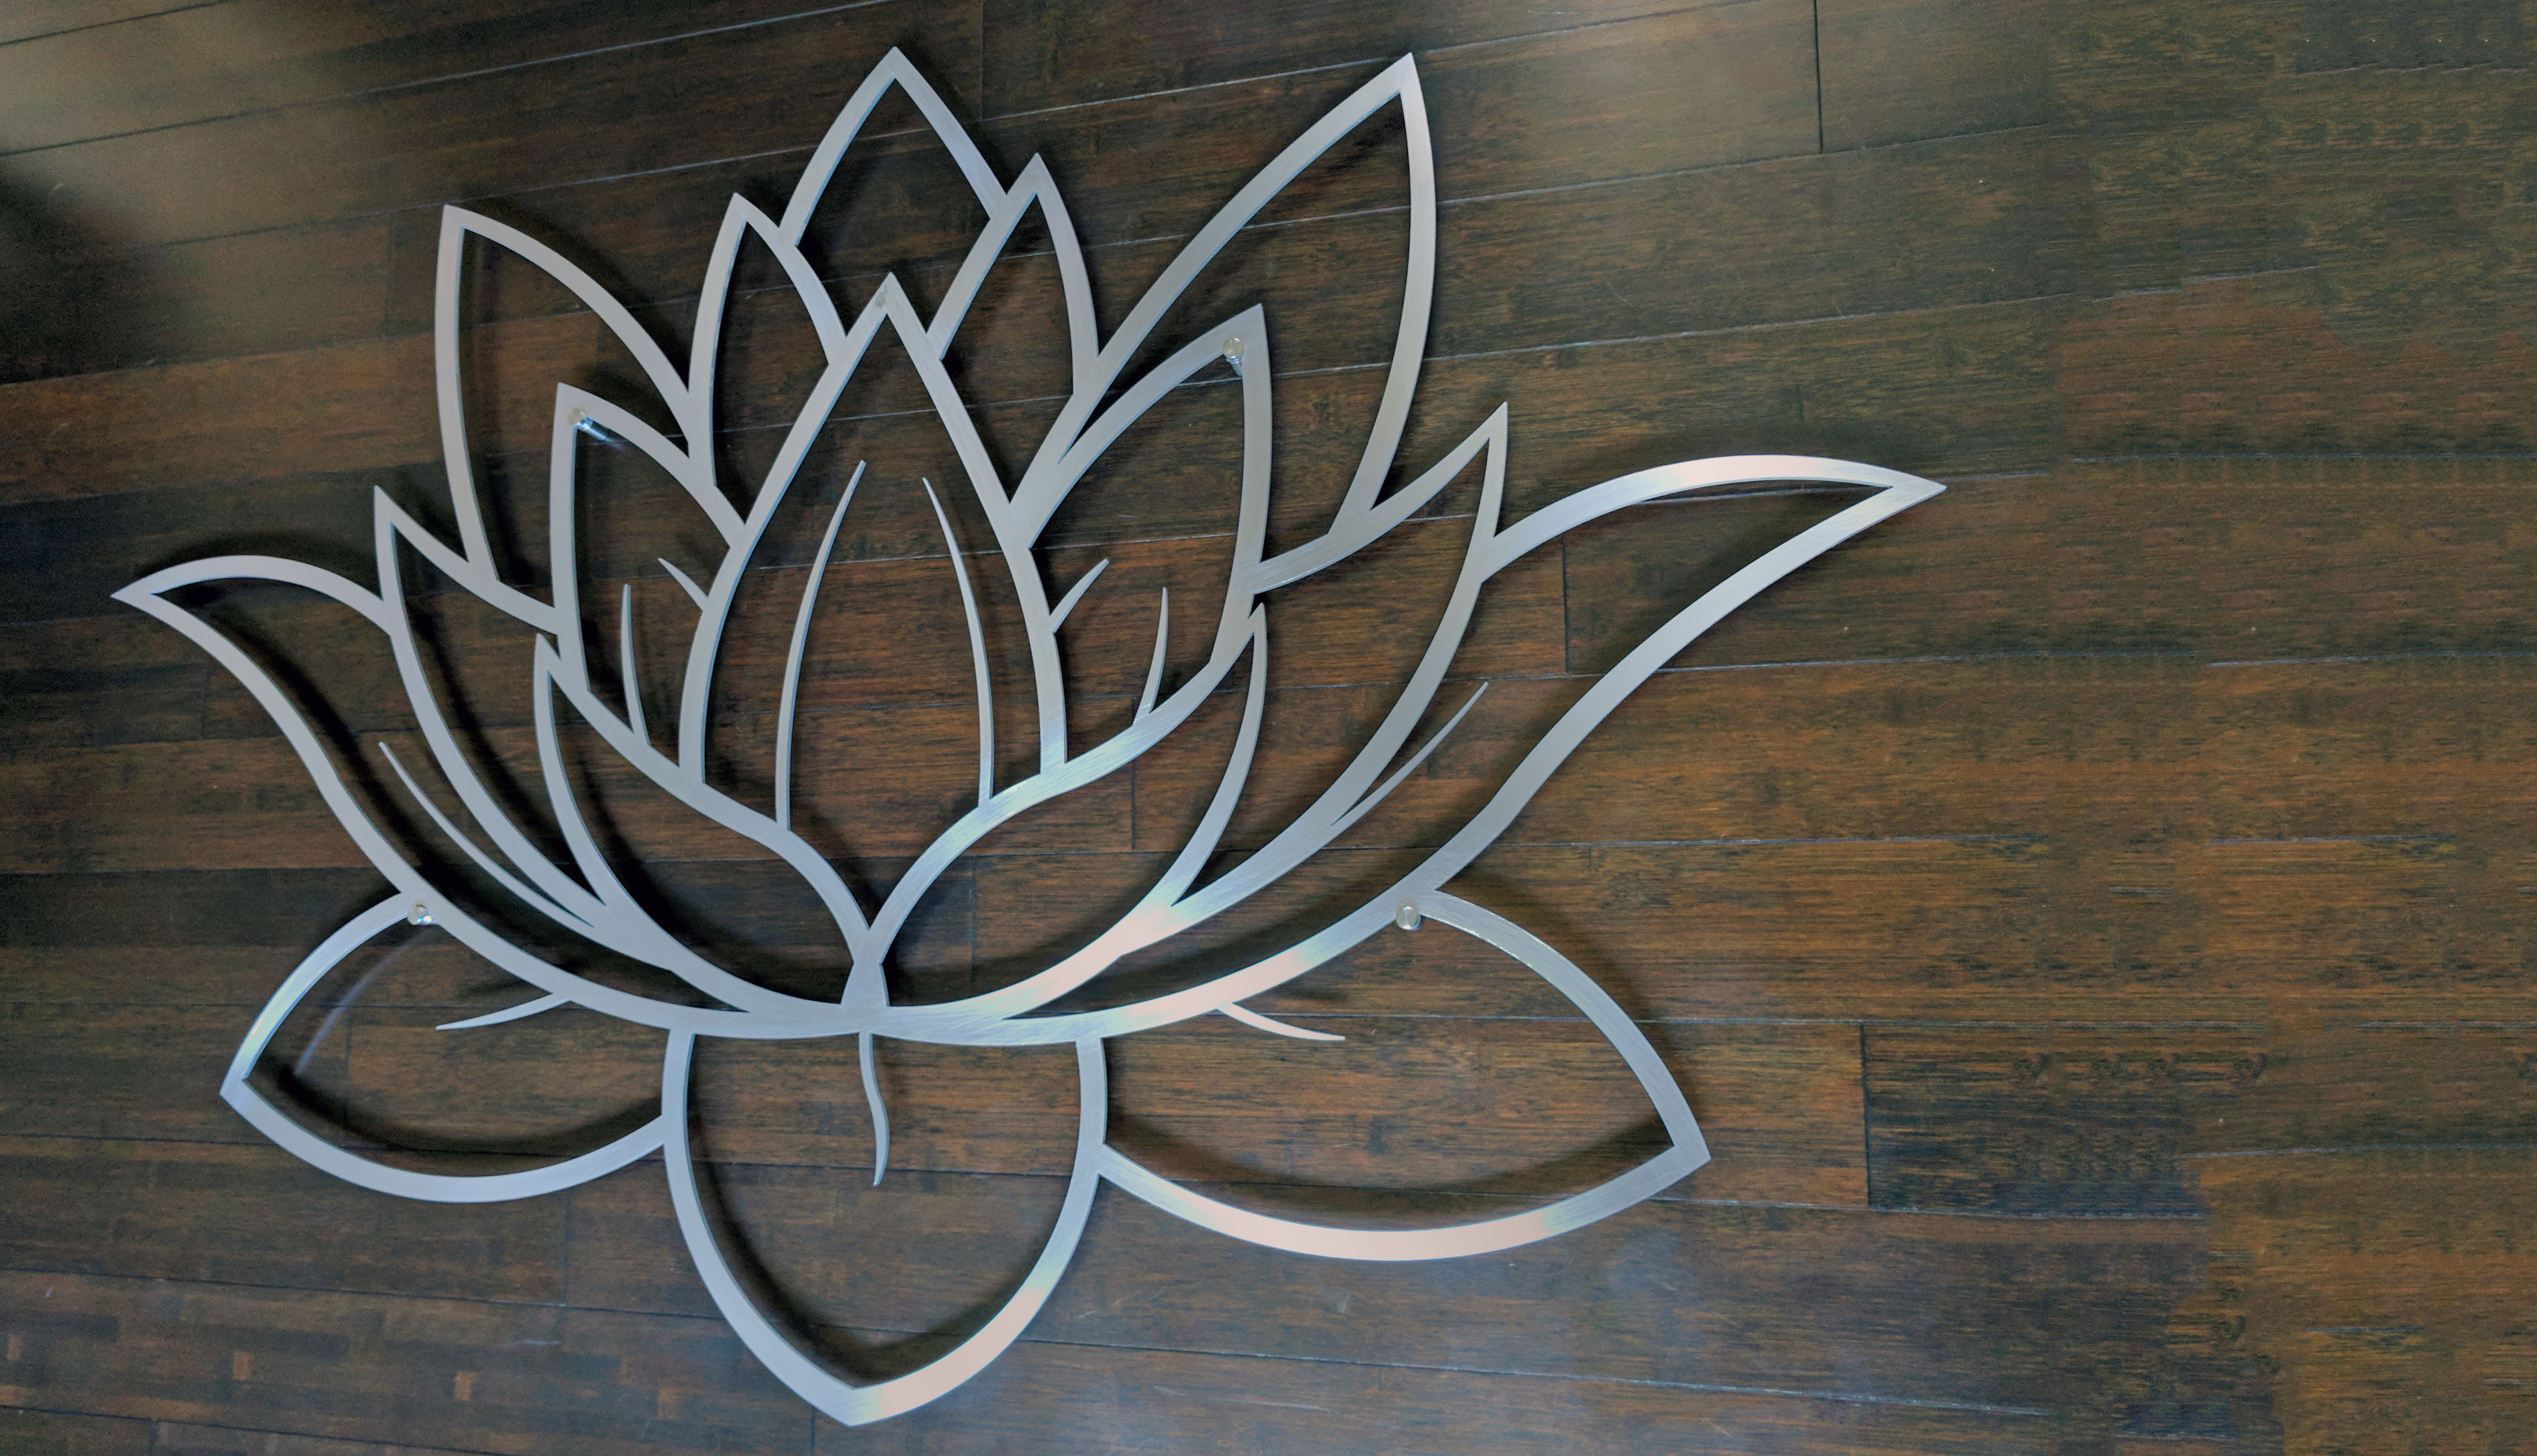 Metal wall art decorative laser cut panel sculpture for home office